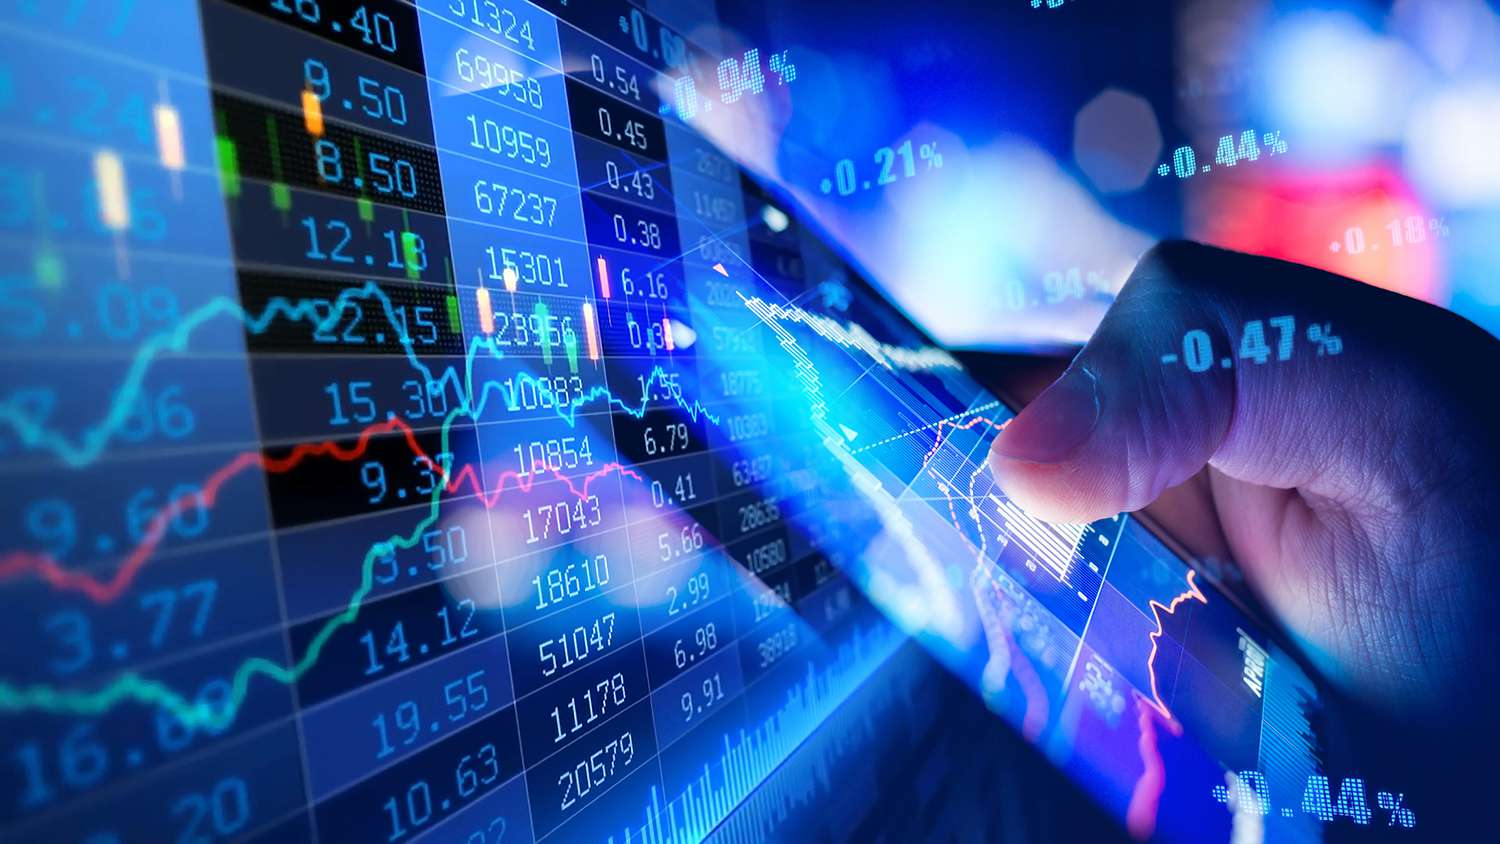 Special Techniques for Improving the Trading Performance